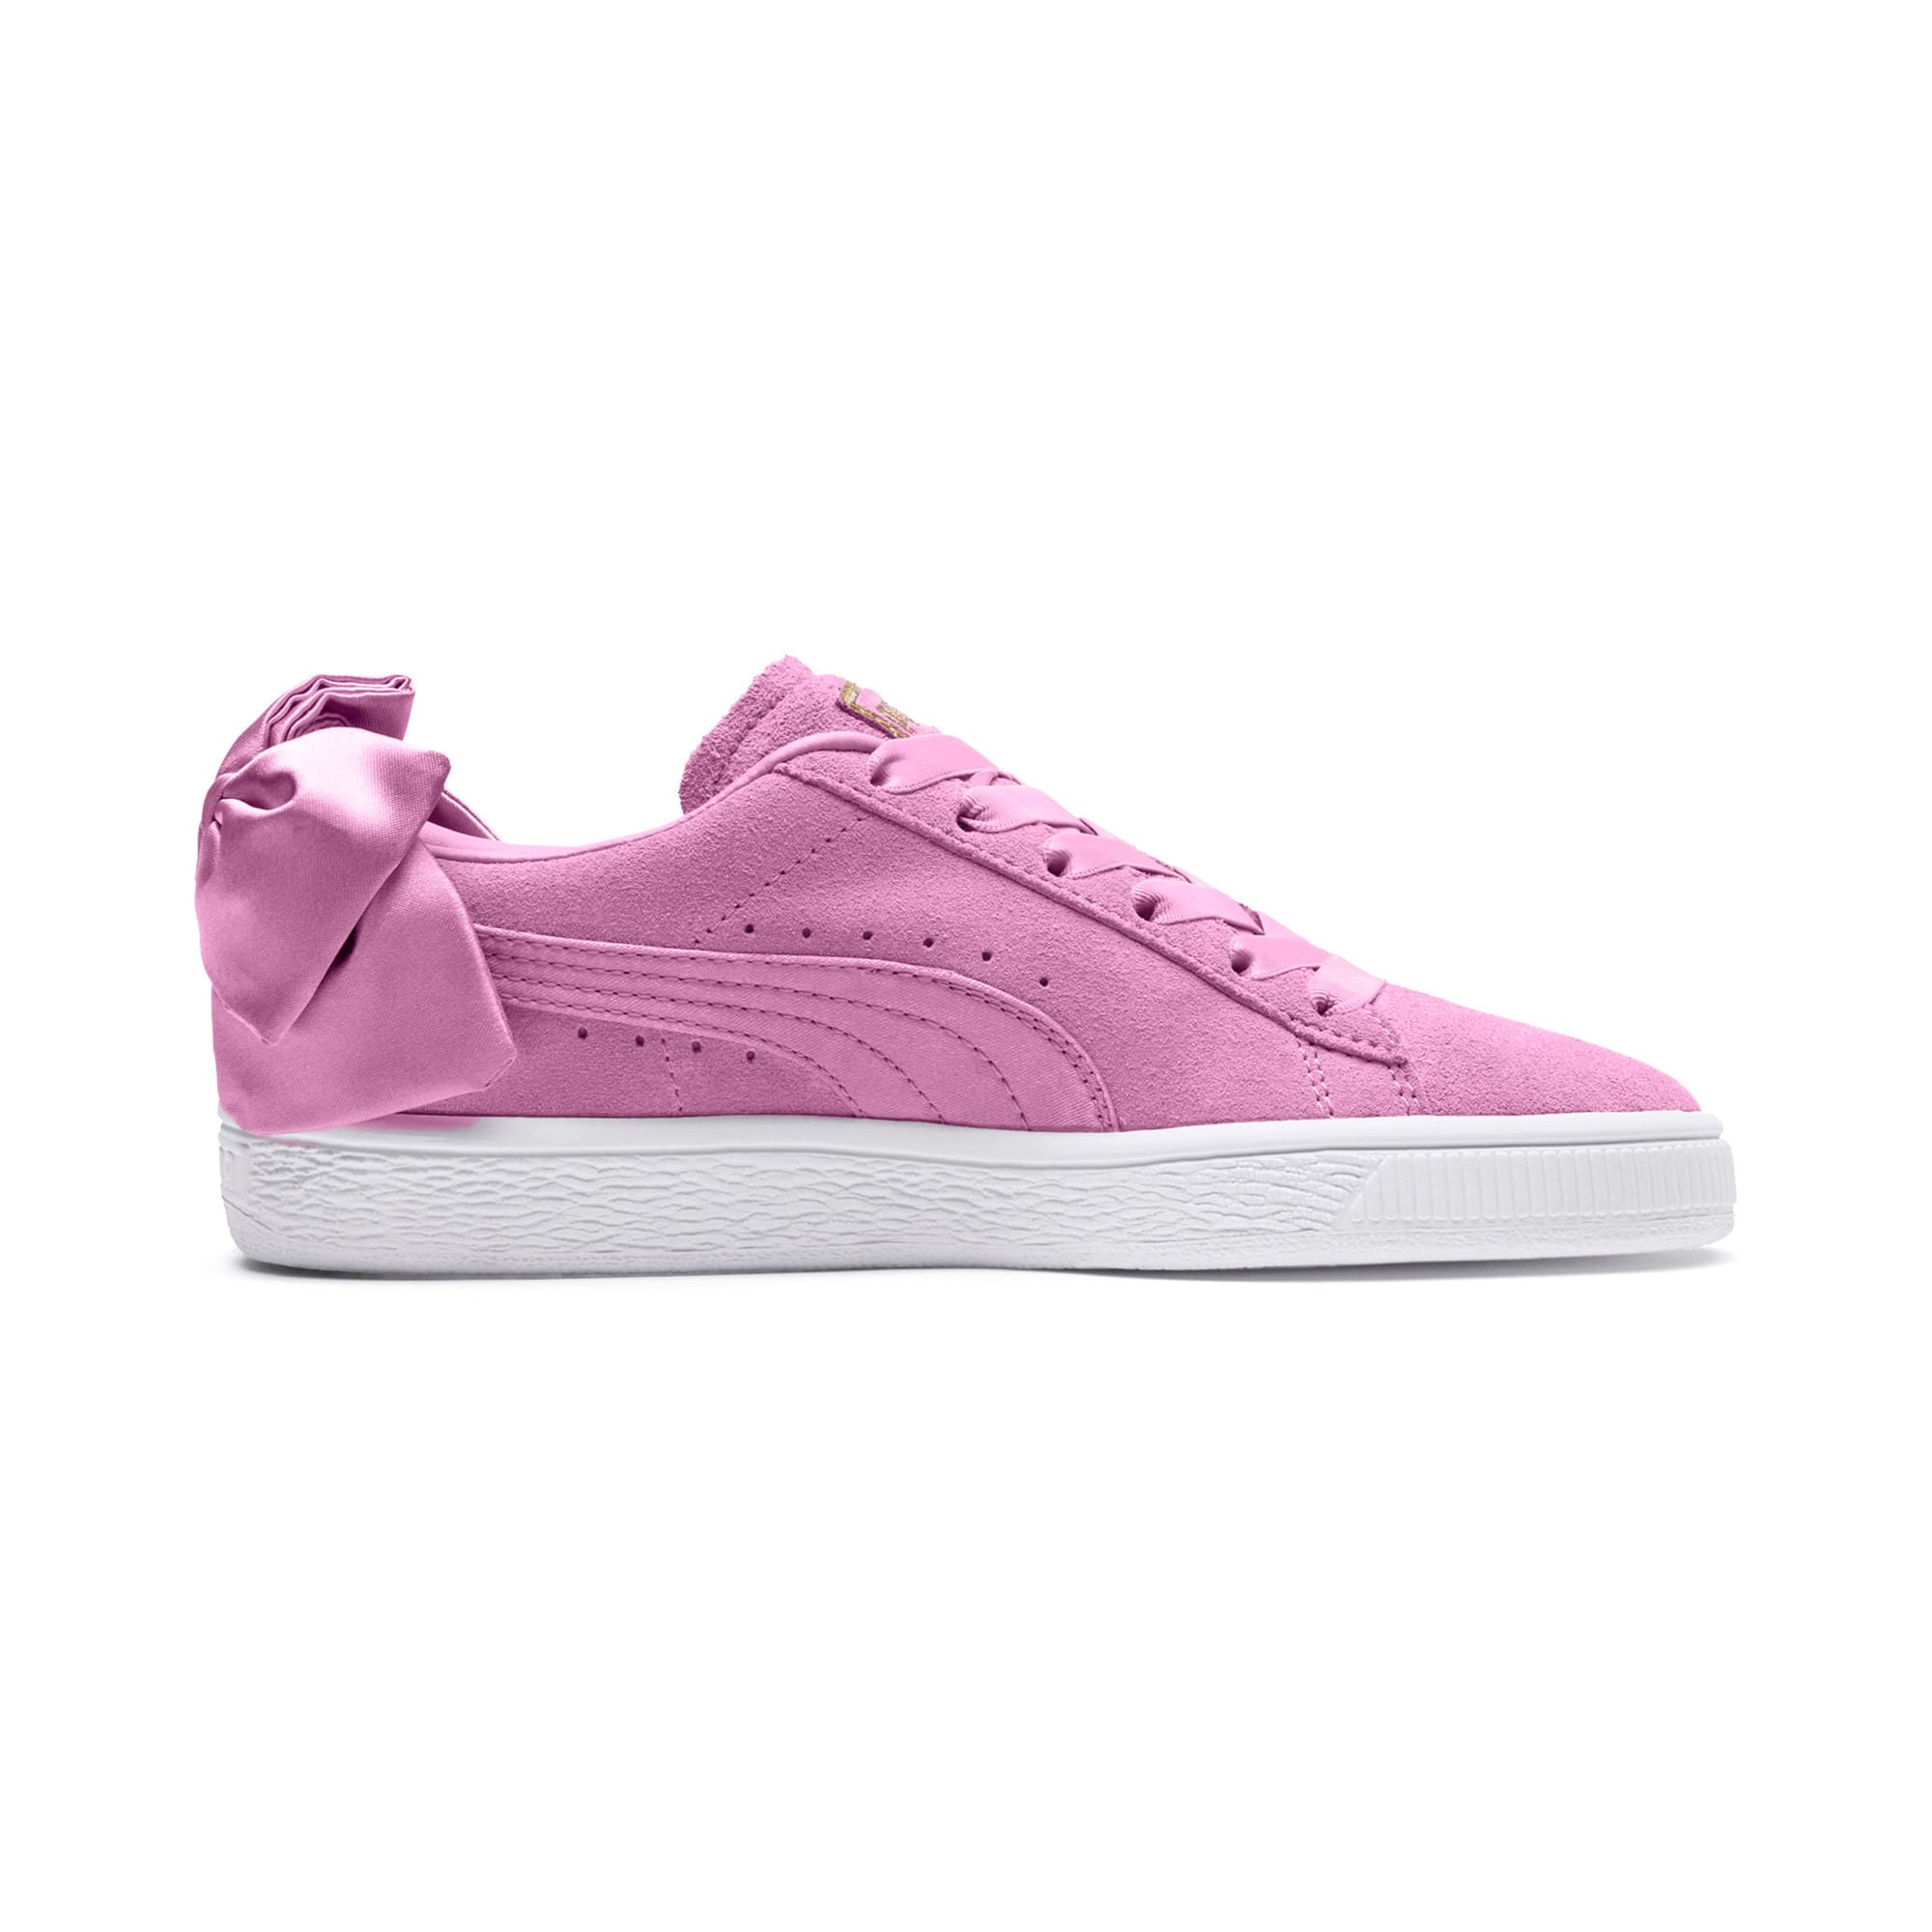 Thumbnail 5 of Suede Bow Girls' Trainers, Orchid-Orchid, medium-IND